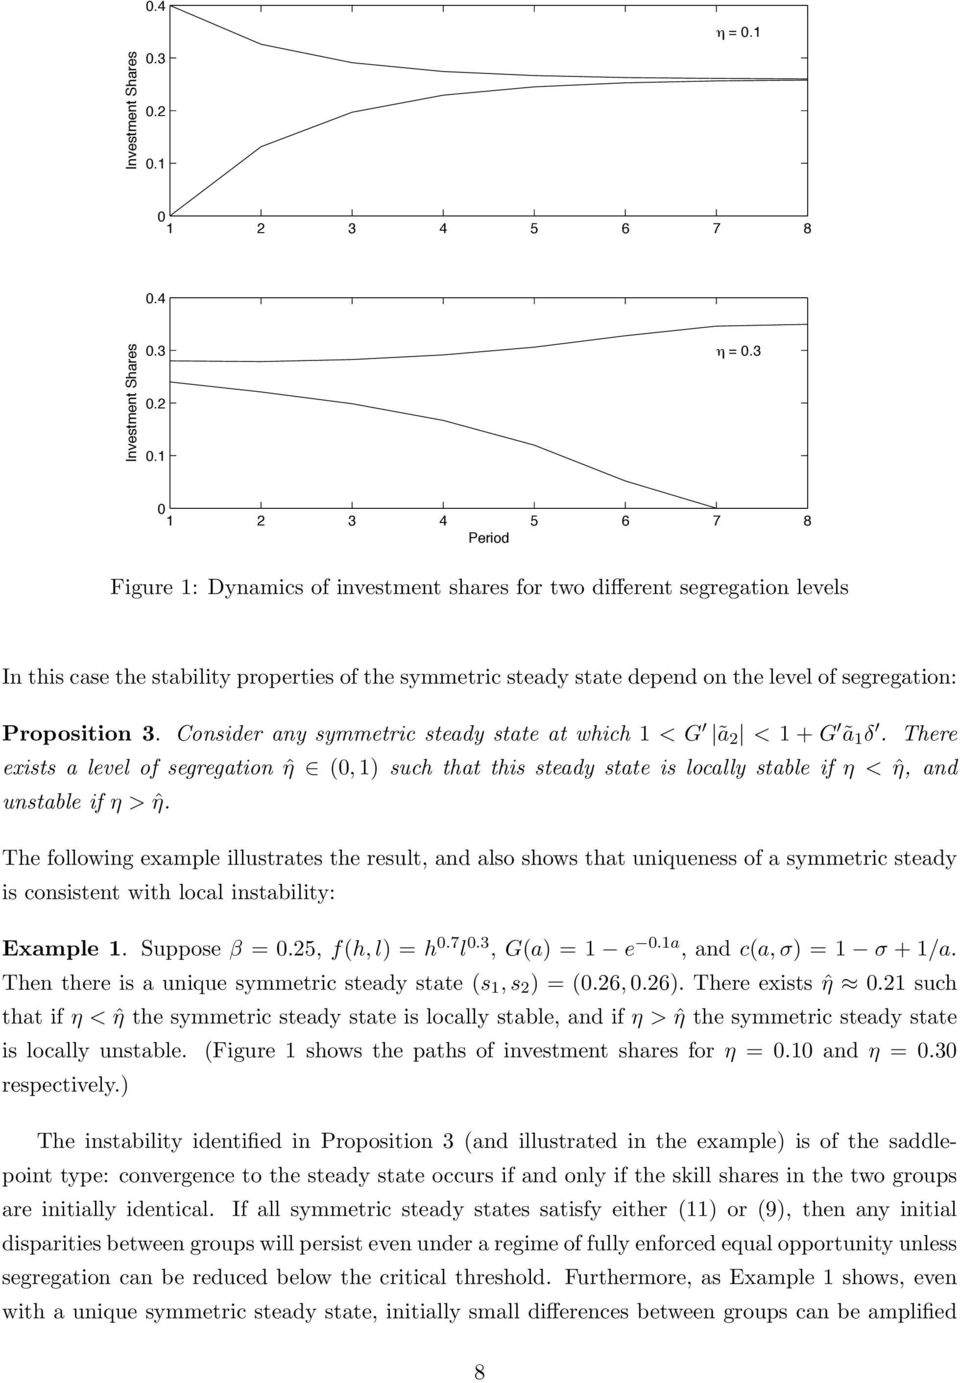 3 0 1 2 3 4 5 6 7 8 Period Figure 1: Dynamics of investment shares for two different segregation levels In this case the stability properties of the symmetric steady state depend on the level of